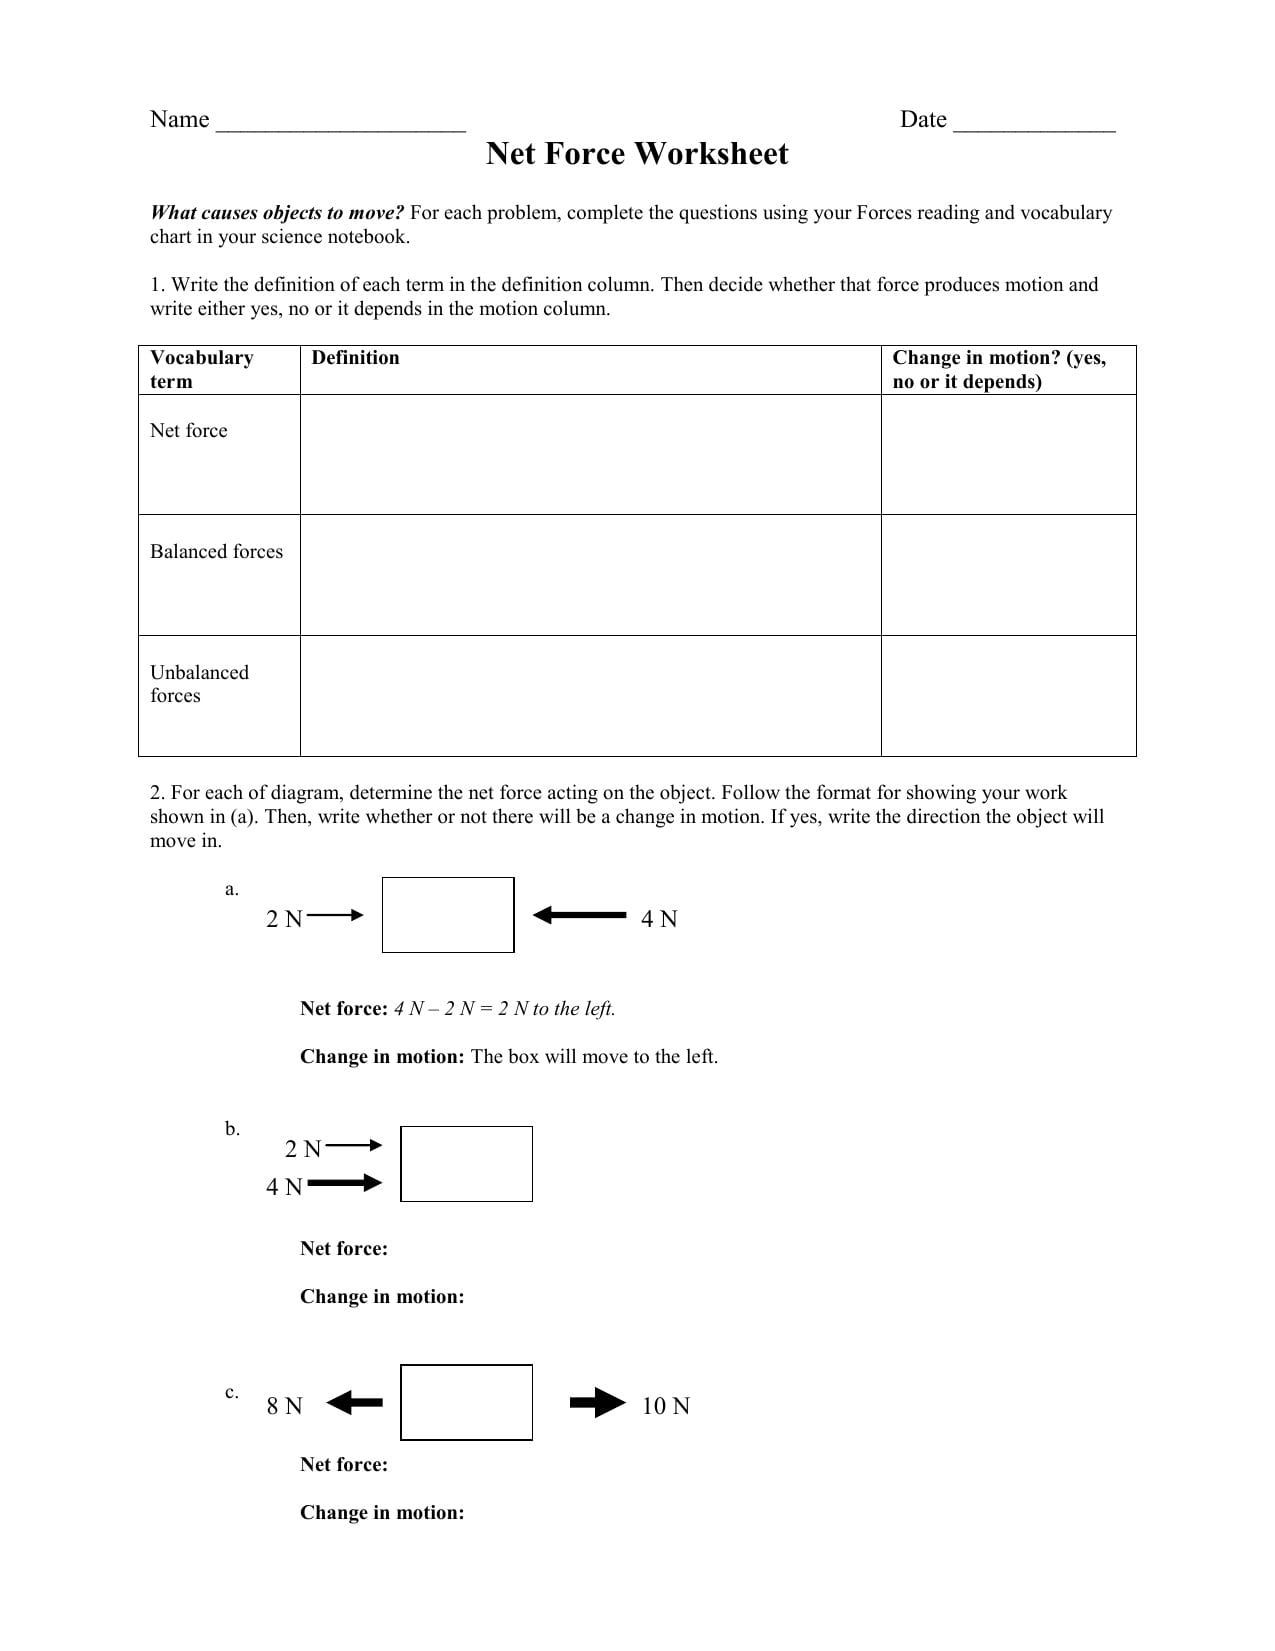 Net Force Worksheet Answer Key